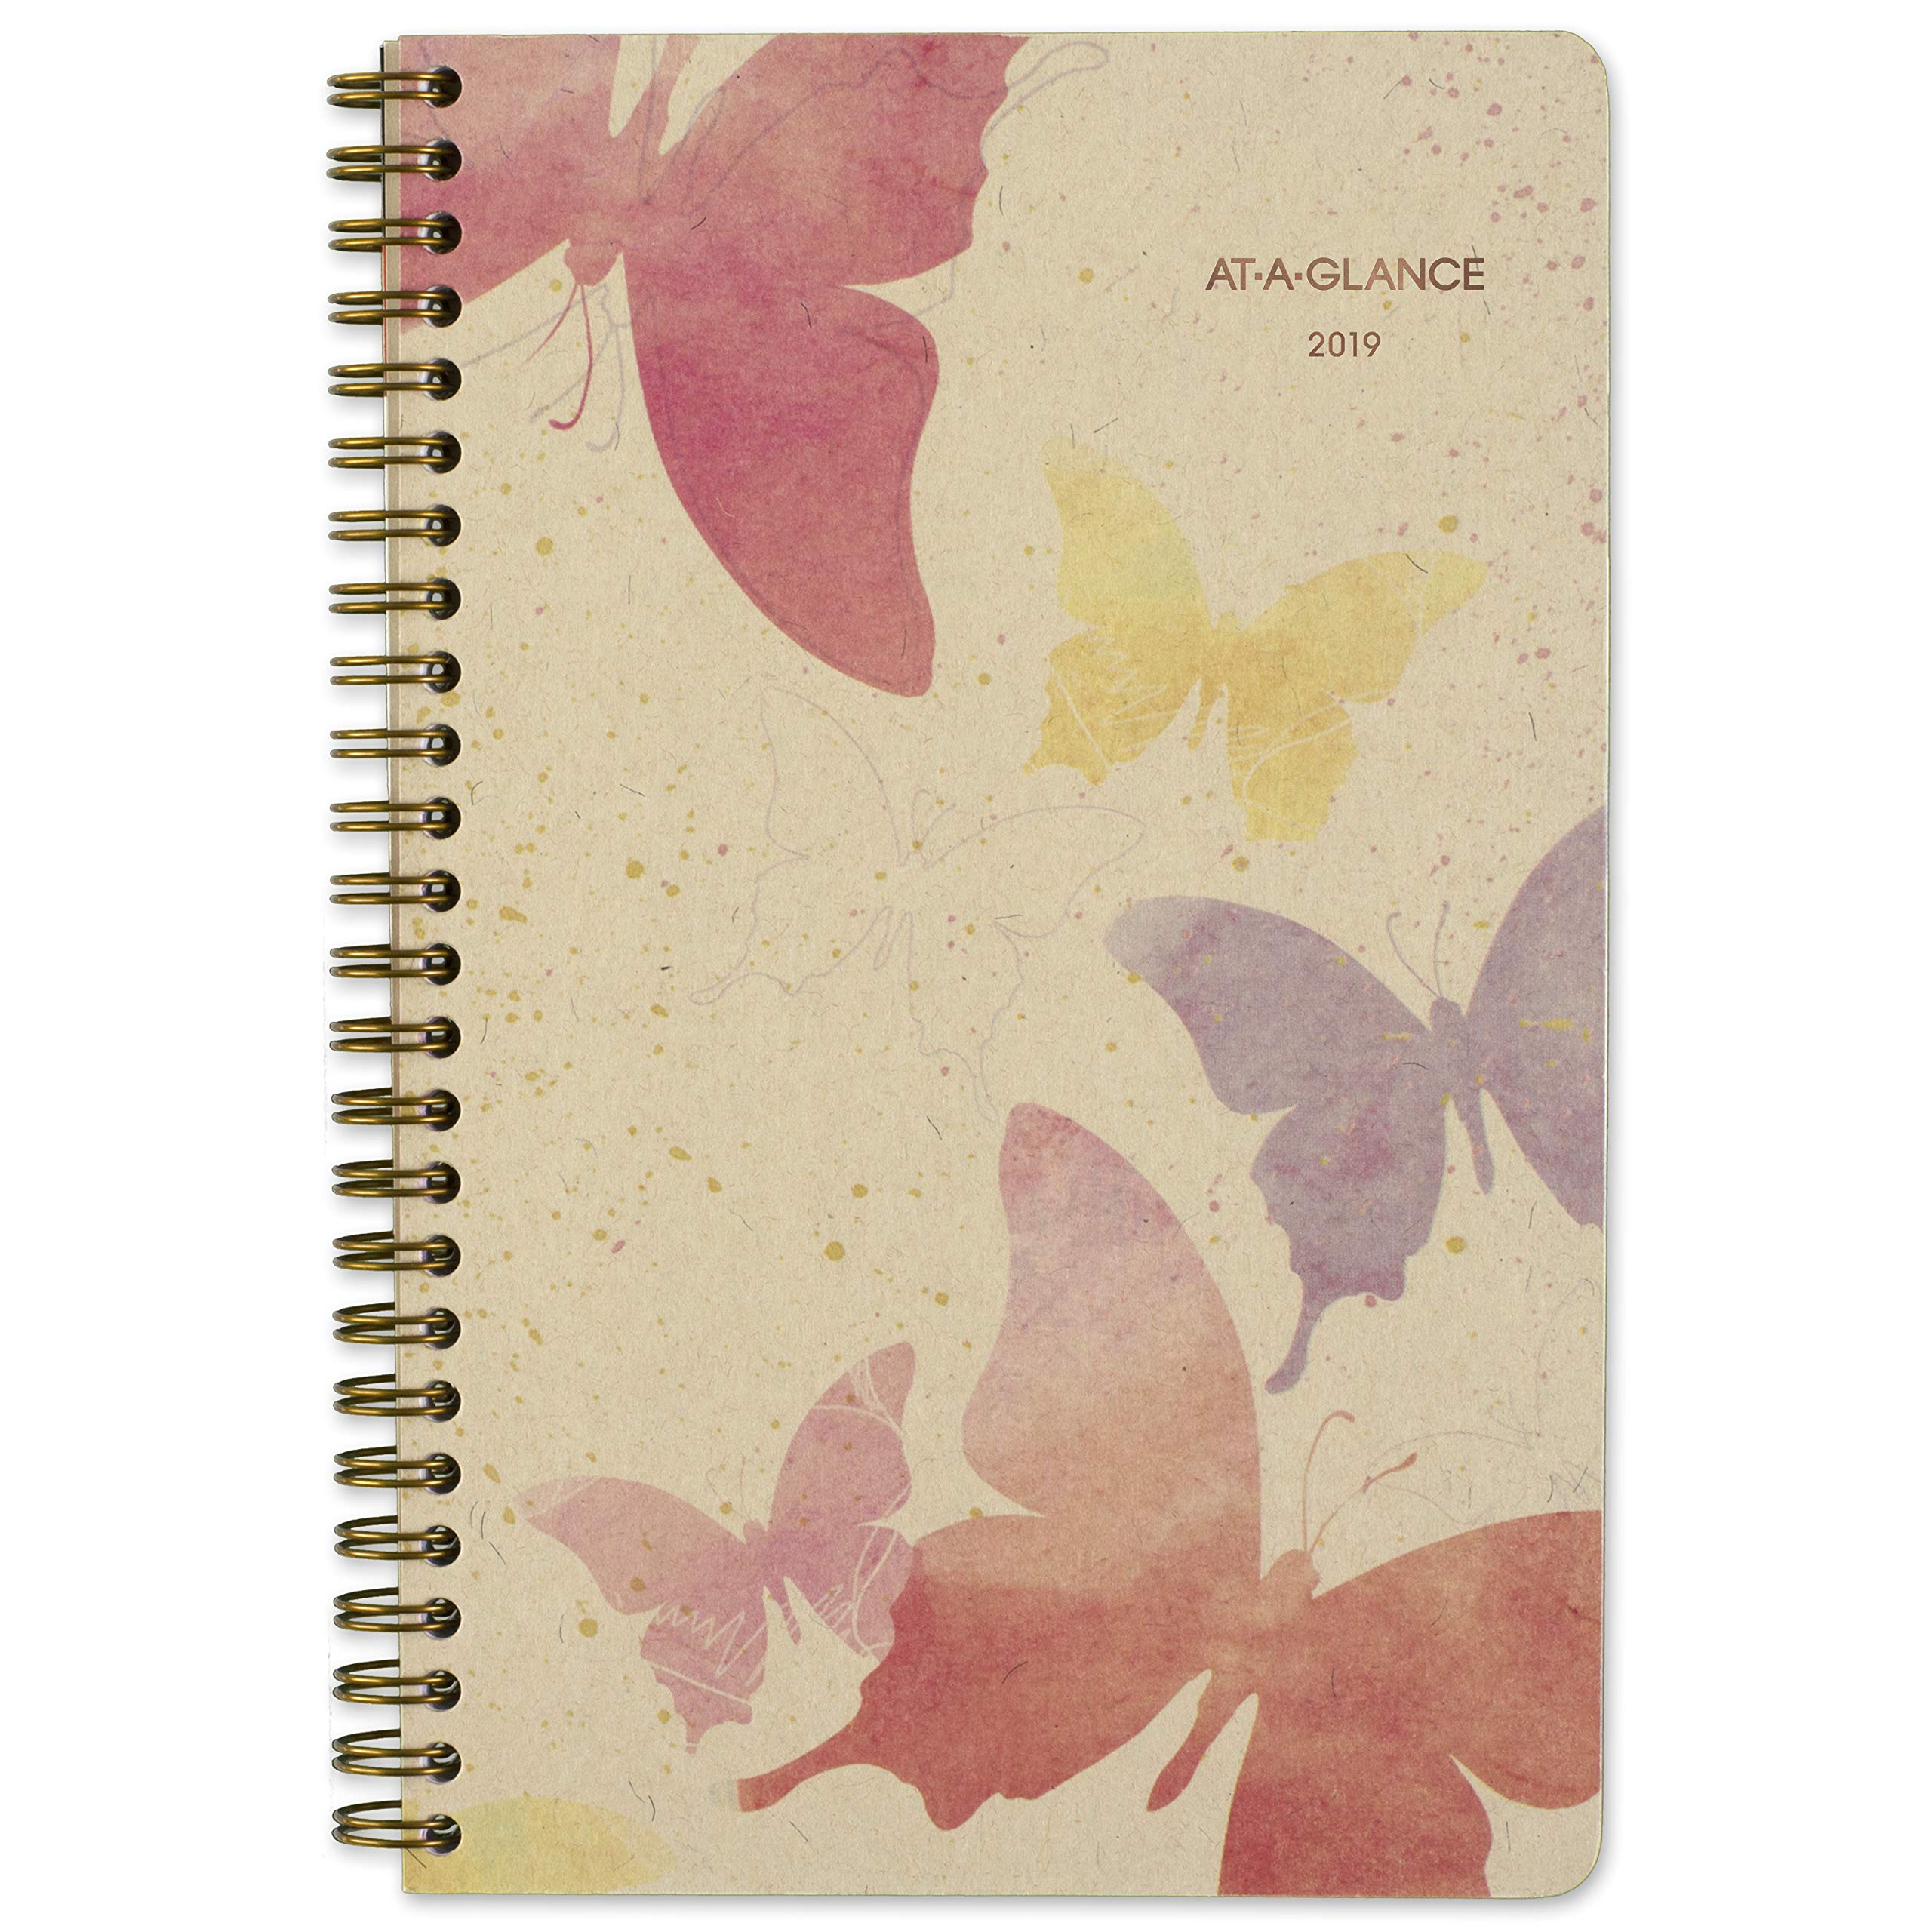 AT-A-GLANCE 2019 Weekly & Monthly Planner, 5-1/2'' x 8-1/2'', Small, Recycled, Watercolors, (791-200G)